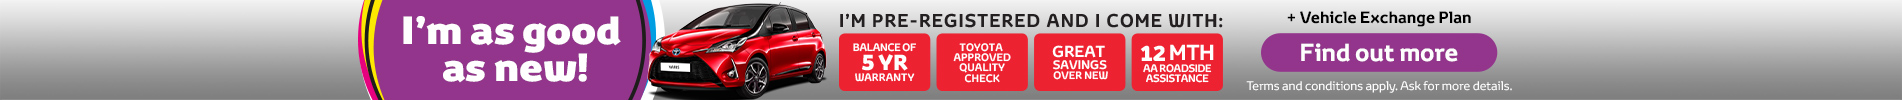 Toyota Pre-registered